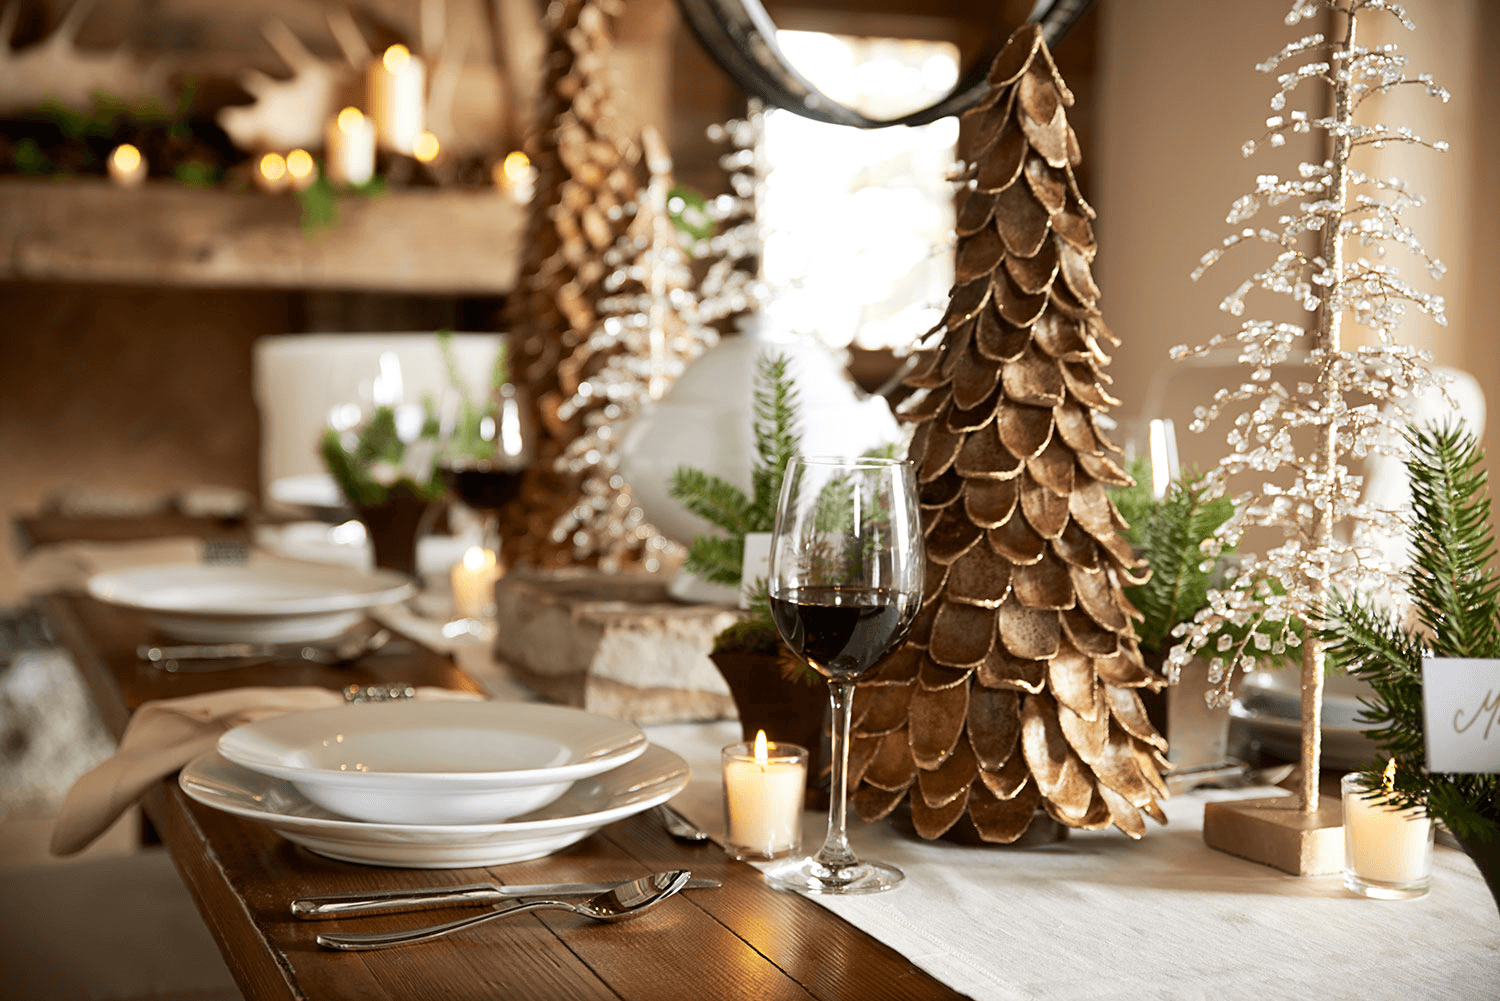 Small Christmas Tree for Dining Table Decoration